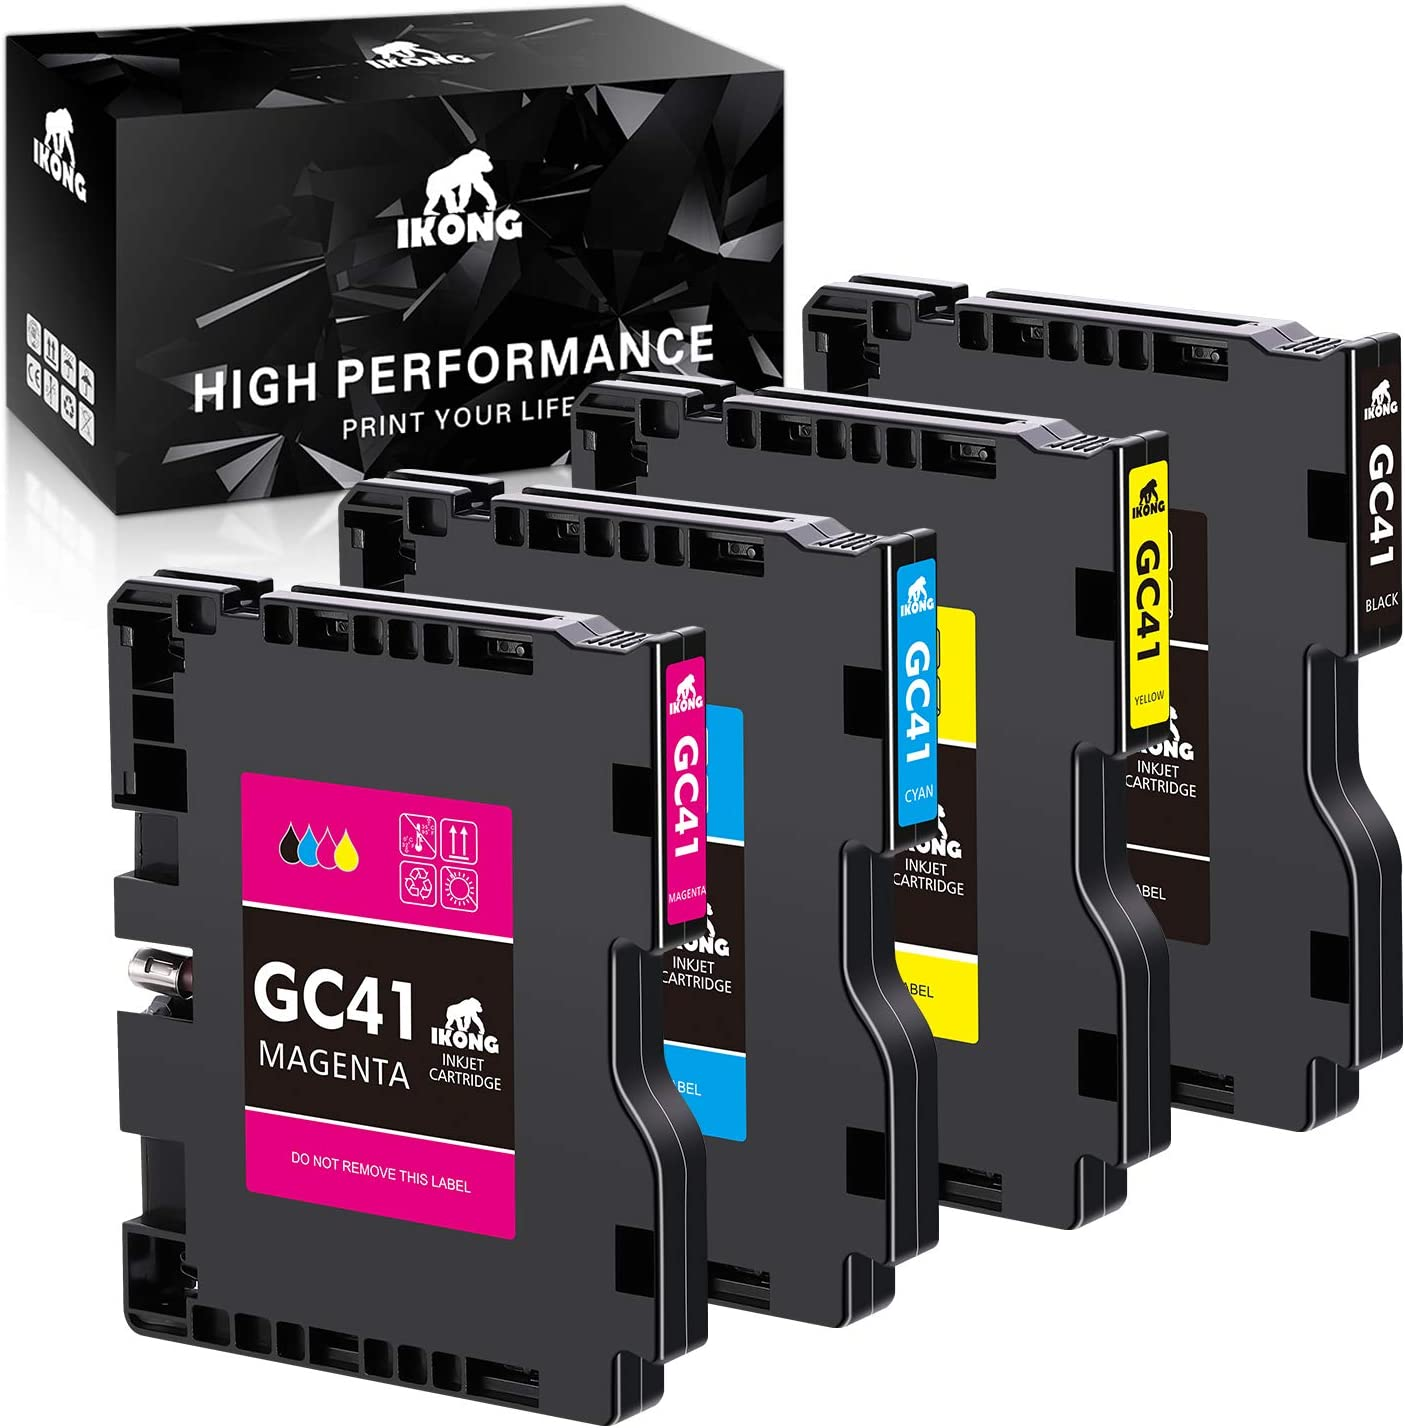 IKONG Compatible Ink Cartridges Replacement for Ricoh GC41 GC-41 GC41BK GC41C GC41M GC41Y for Aficio SG 3100SNW, Aficio SG 3110DN, 3110Dnw, 3110Sfnw, 7100DN, IPSIO SG 2100 2100N 2010L (4-Pack)